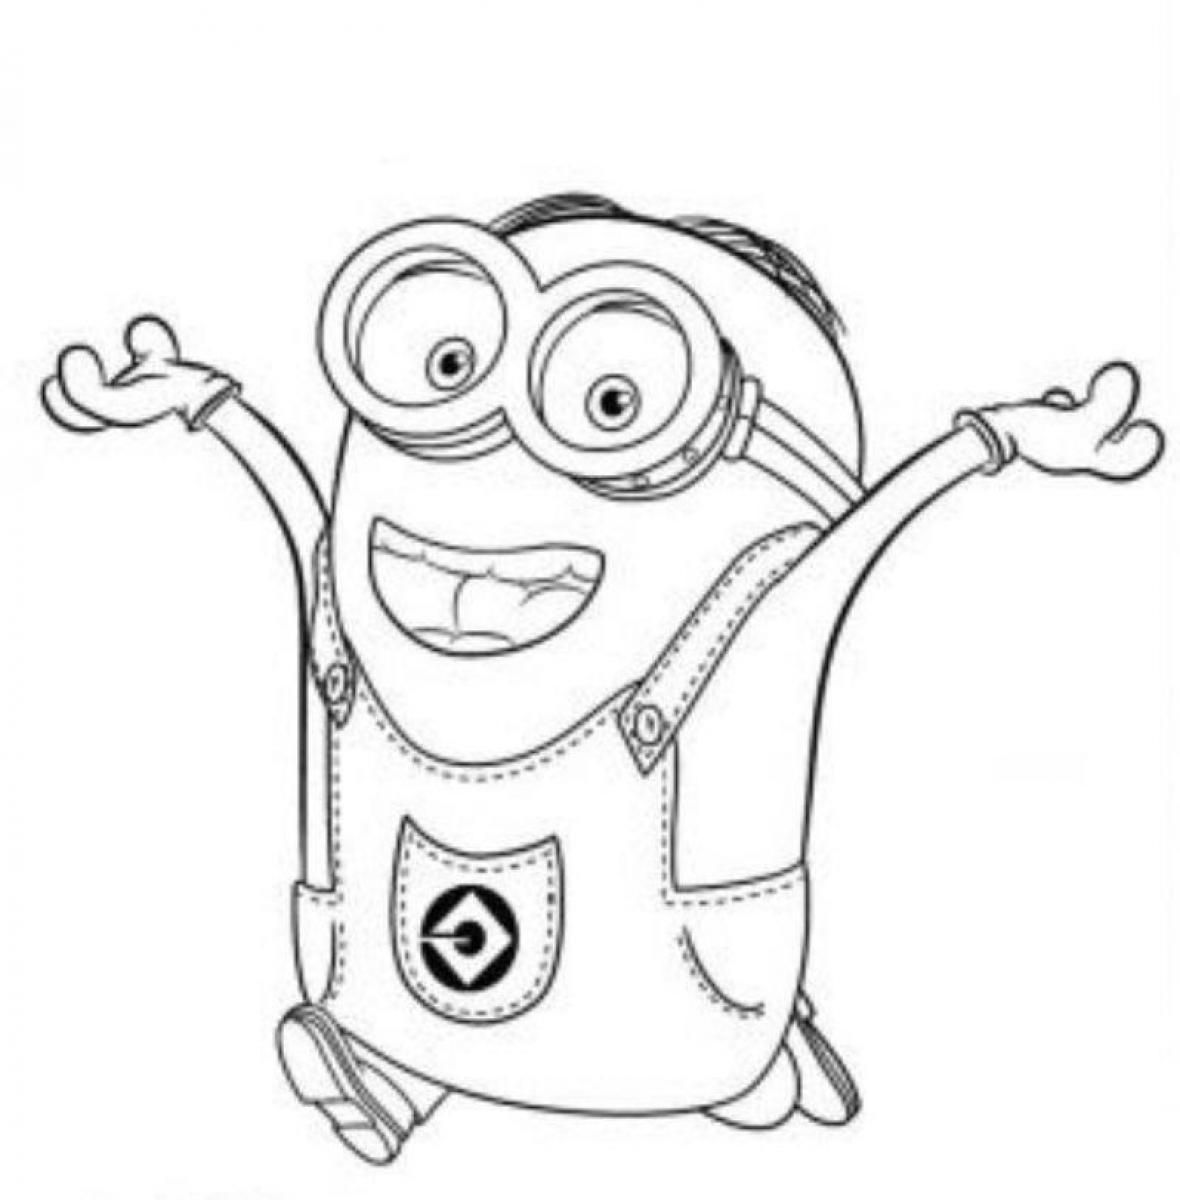 Minion Coloring Pages Printable Minion Coloring Pages Free Minion Coloring Pages Online